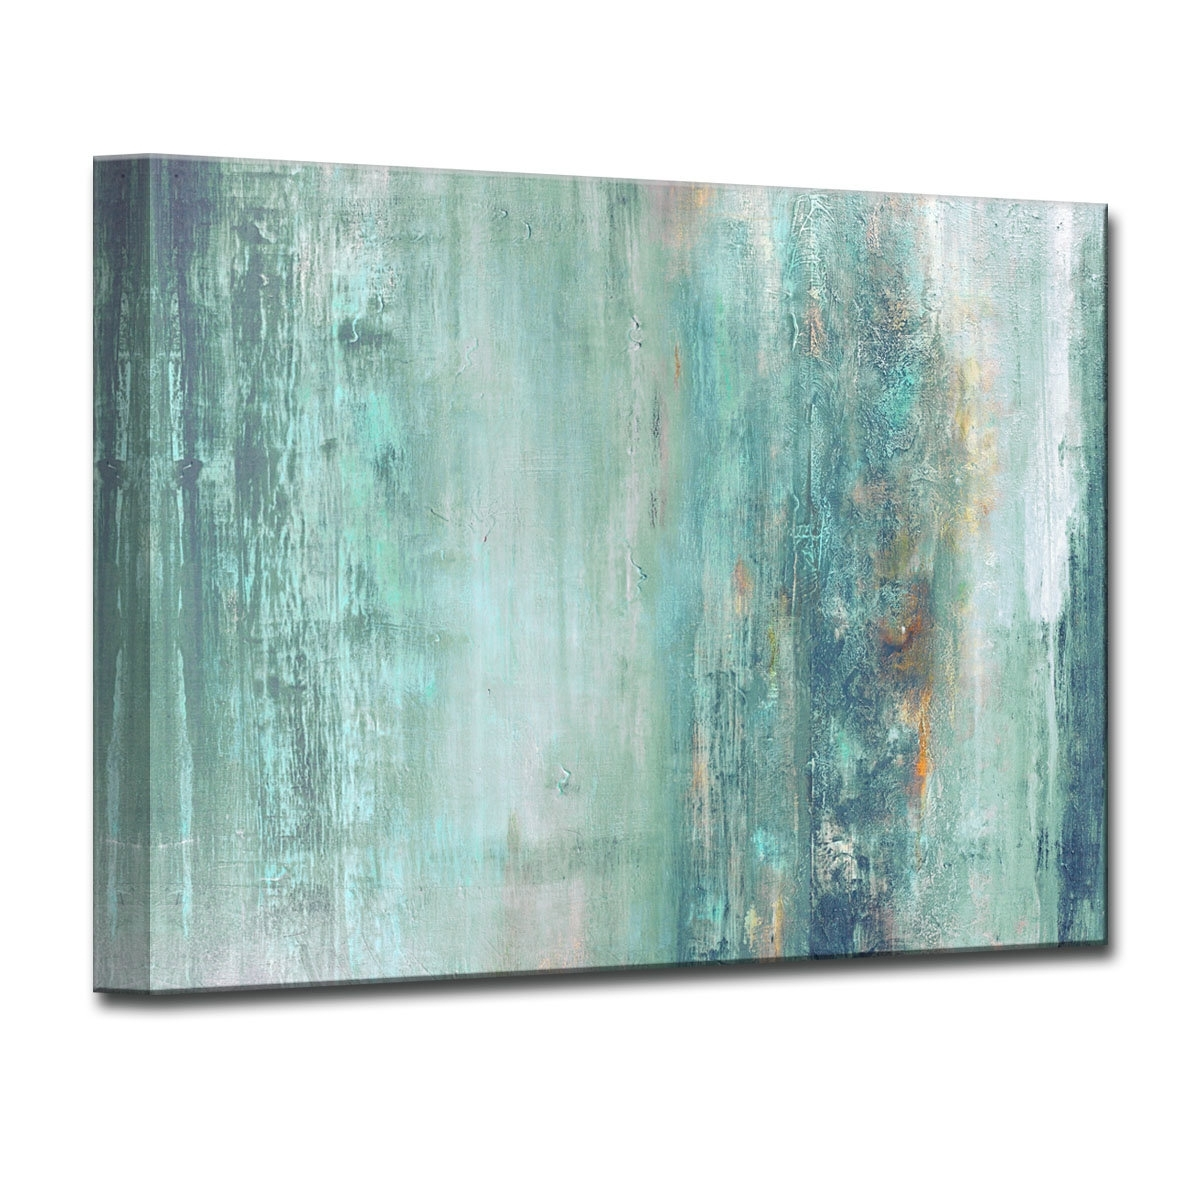 Beachcrest Home 'abstract Spa' Framed Graphic Art Print On Canvas Regarding Most Recent Blue And Brown Abstract Wall Art (View 3 of 20)